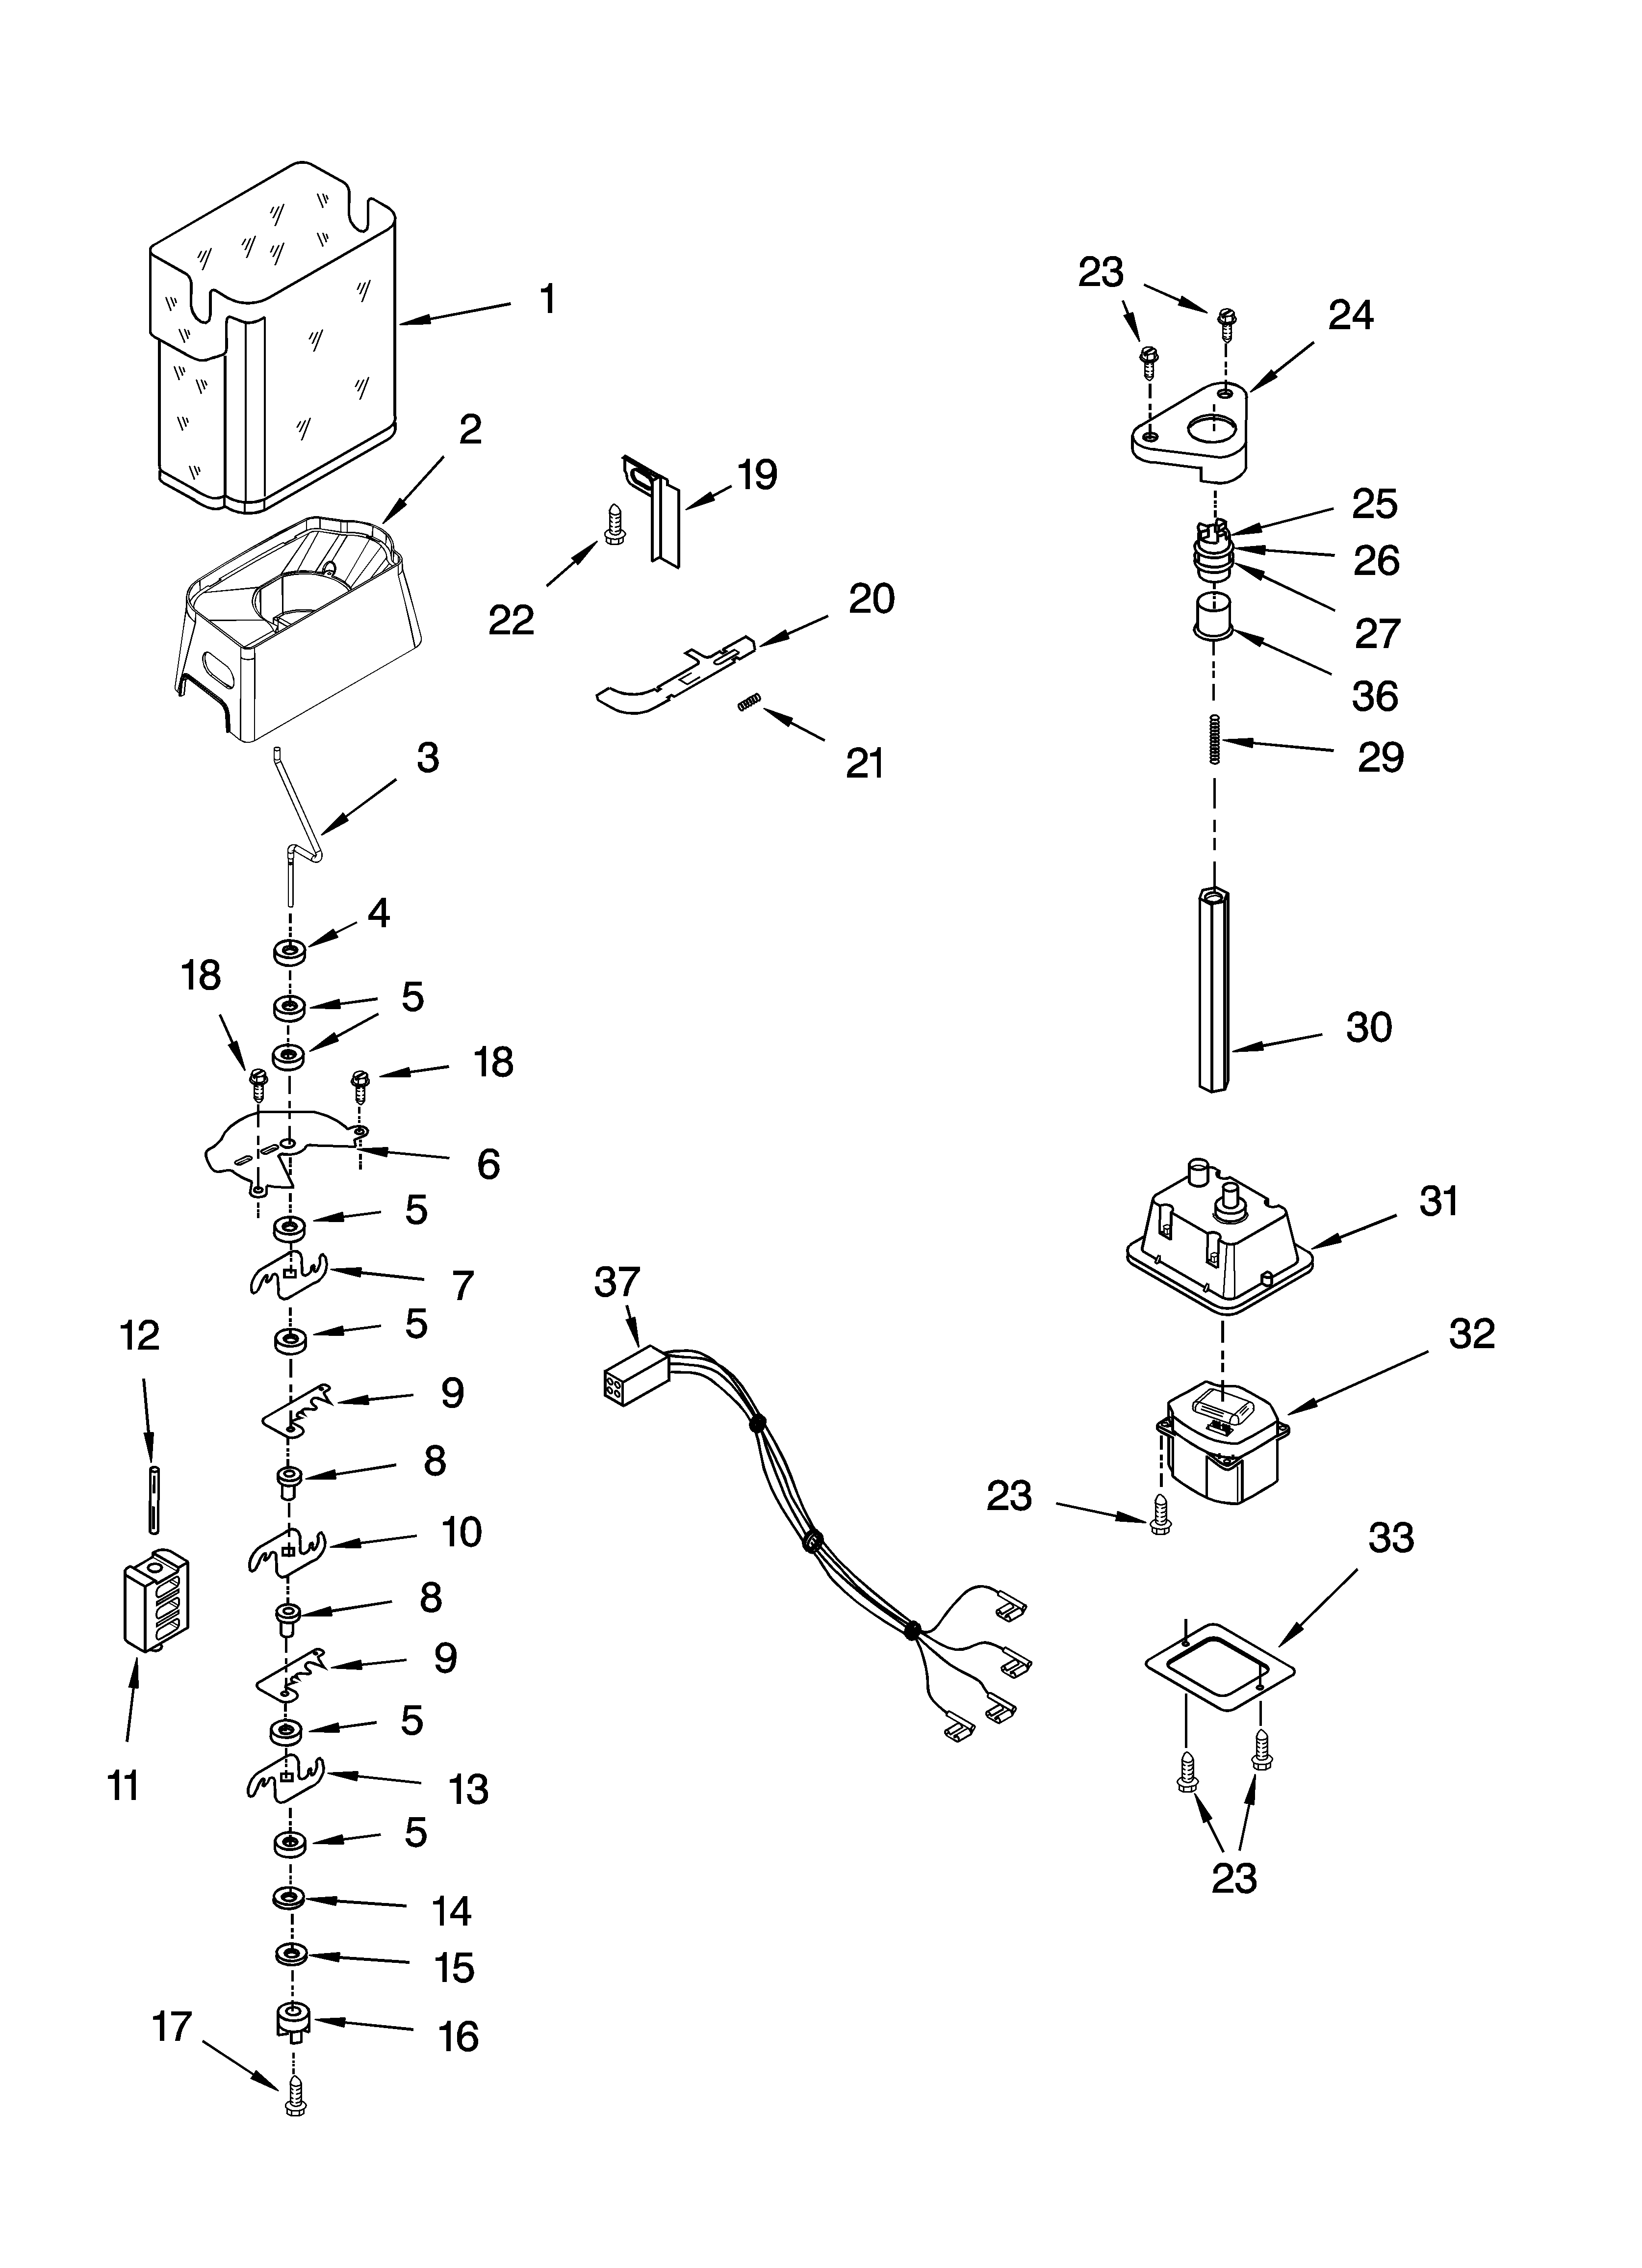 KitchenAid KSBP23INSS00 motor and ice container parts diagram